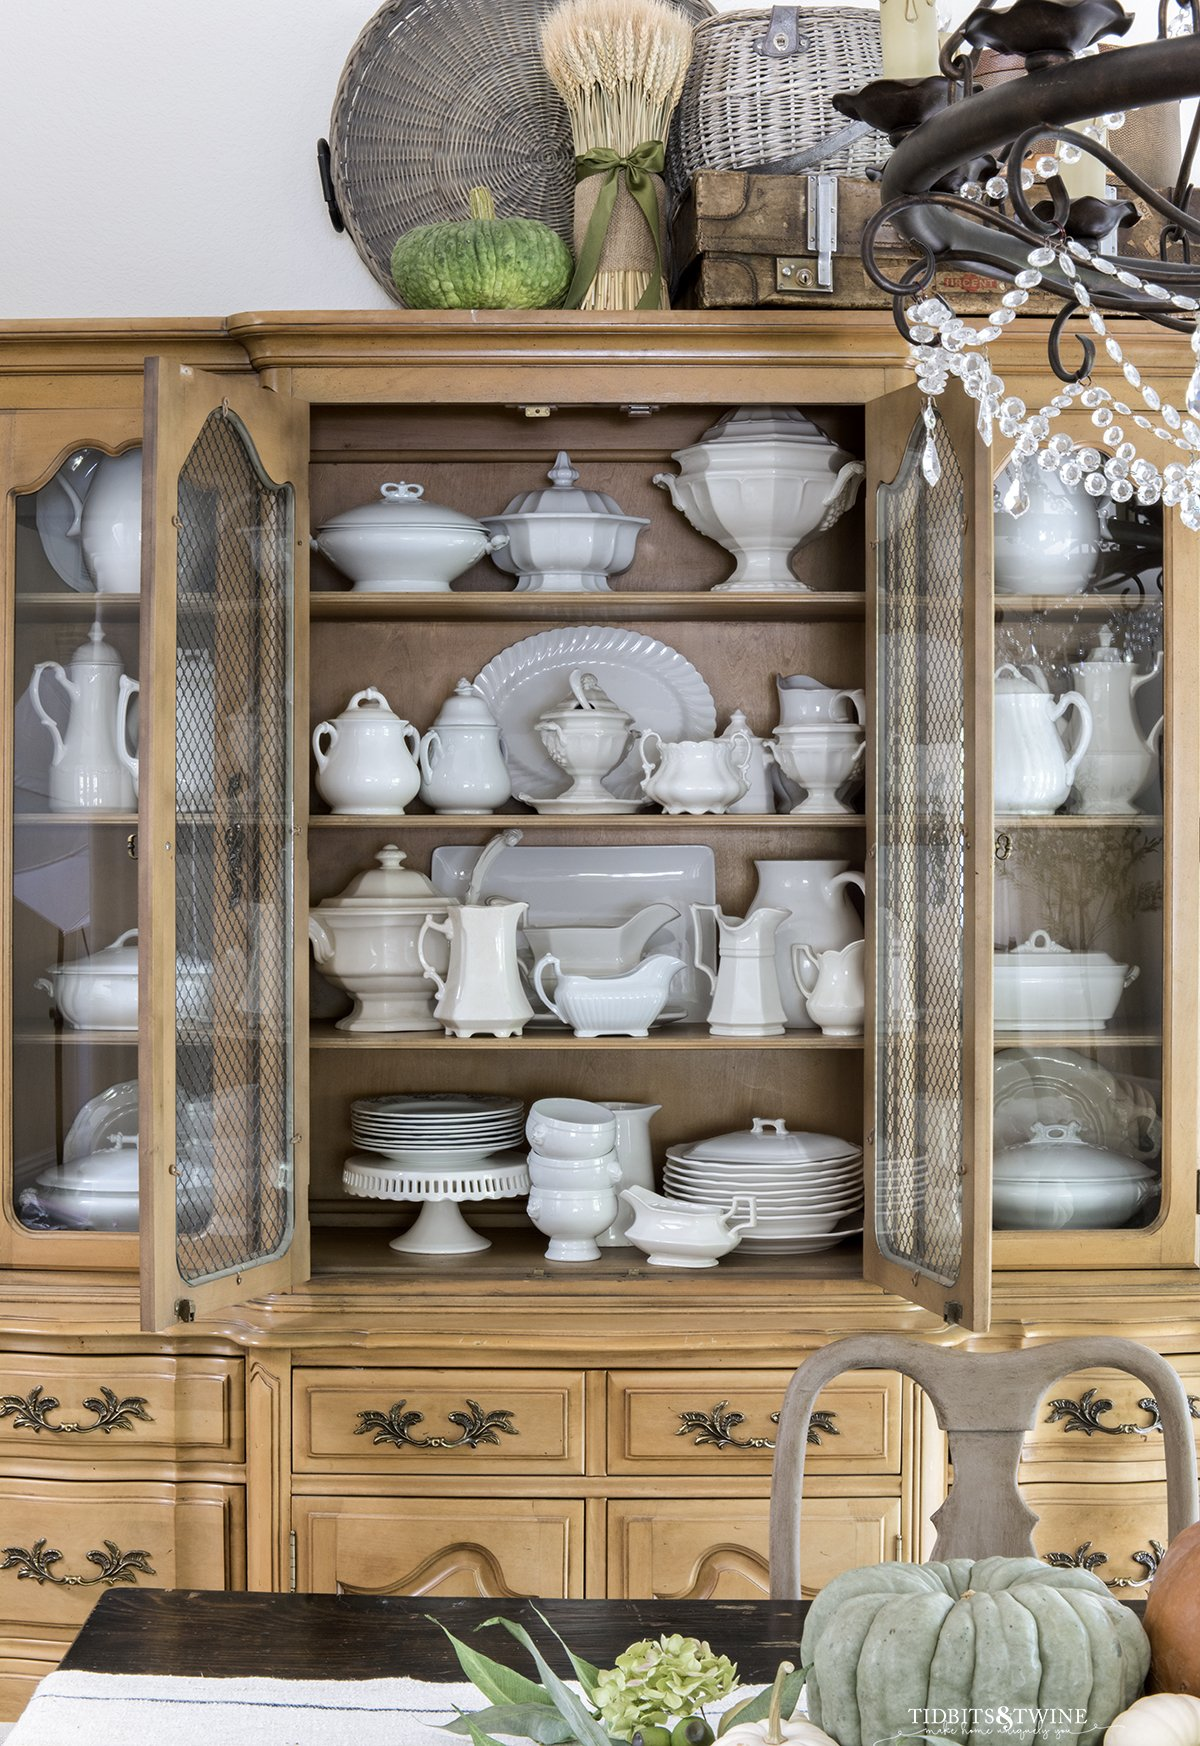 french cabinet full of antique white ironstone collection in a dining room decorated for fall with orange green and white pumpkins